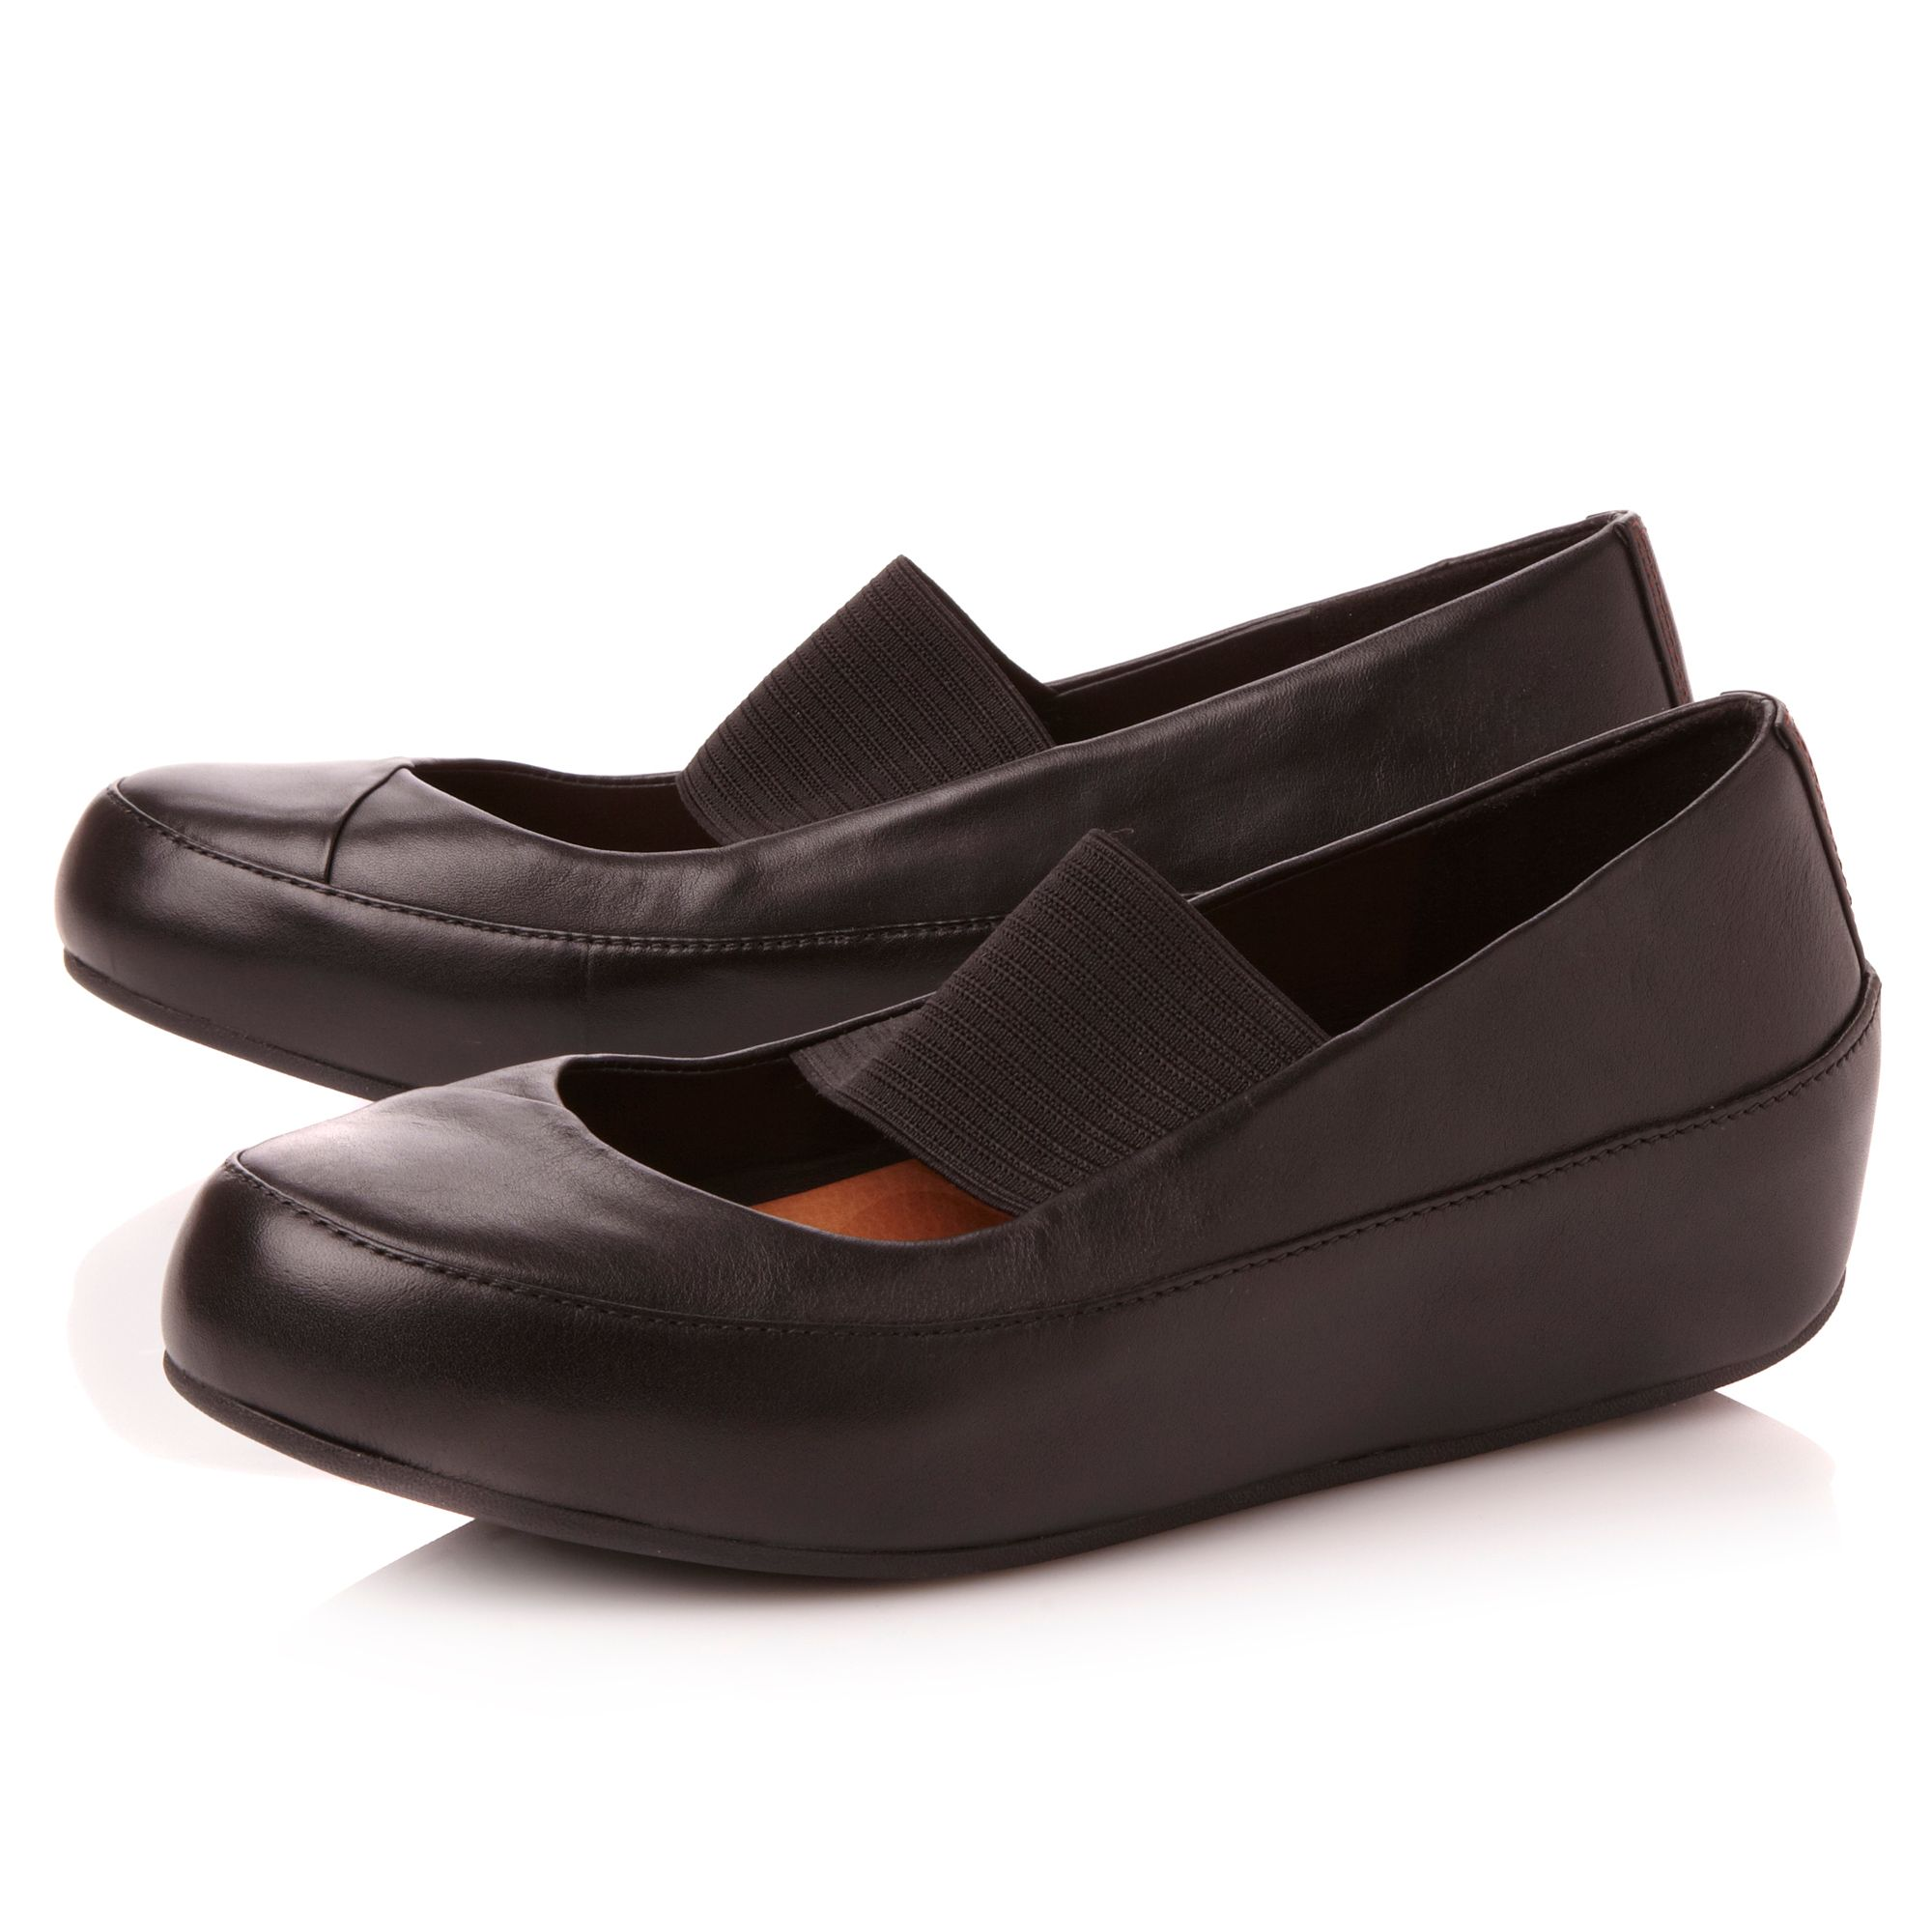 1ad328bb0183a2 Fitflop Due Mary Jane Leather Black